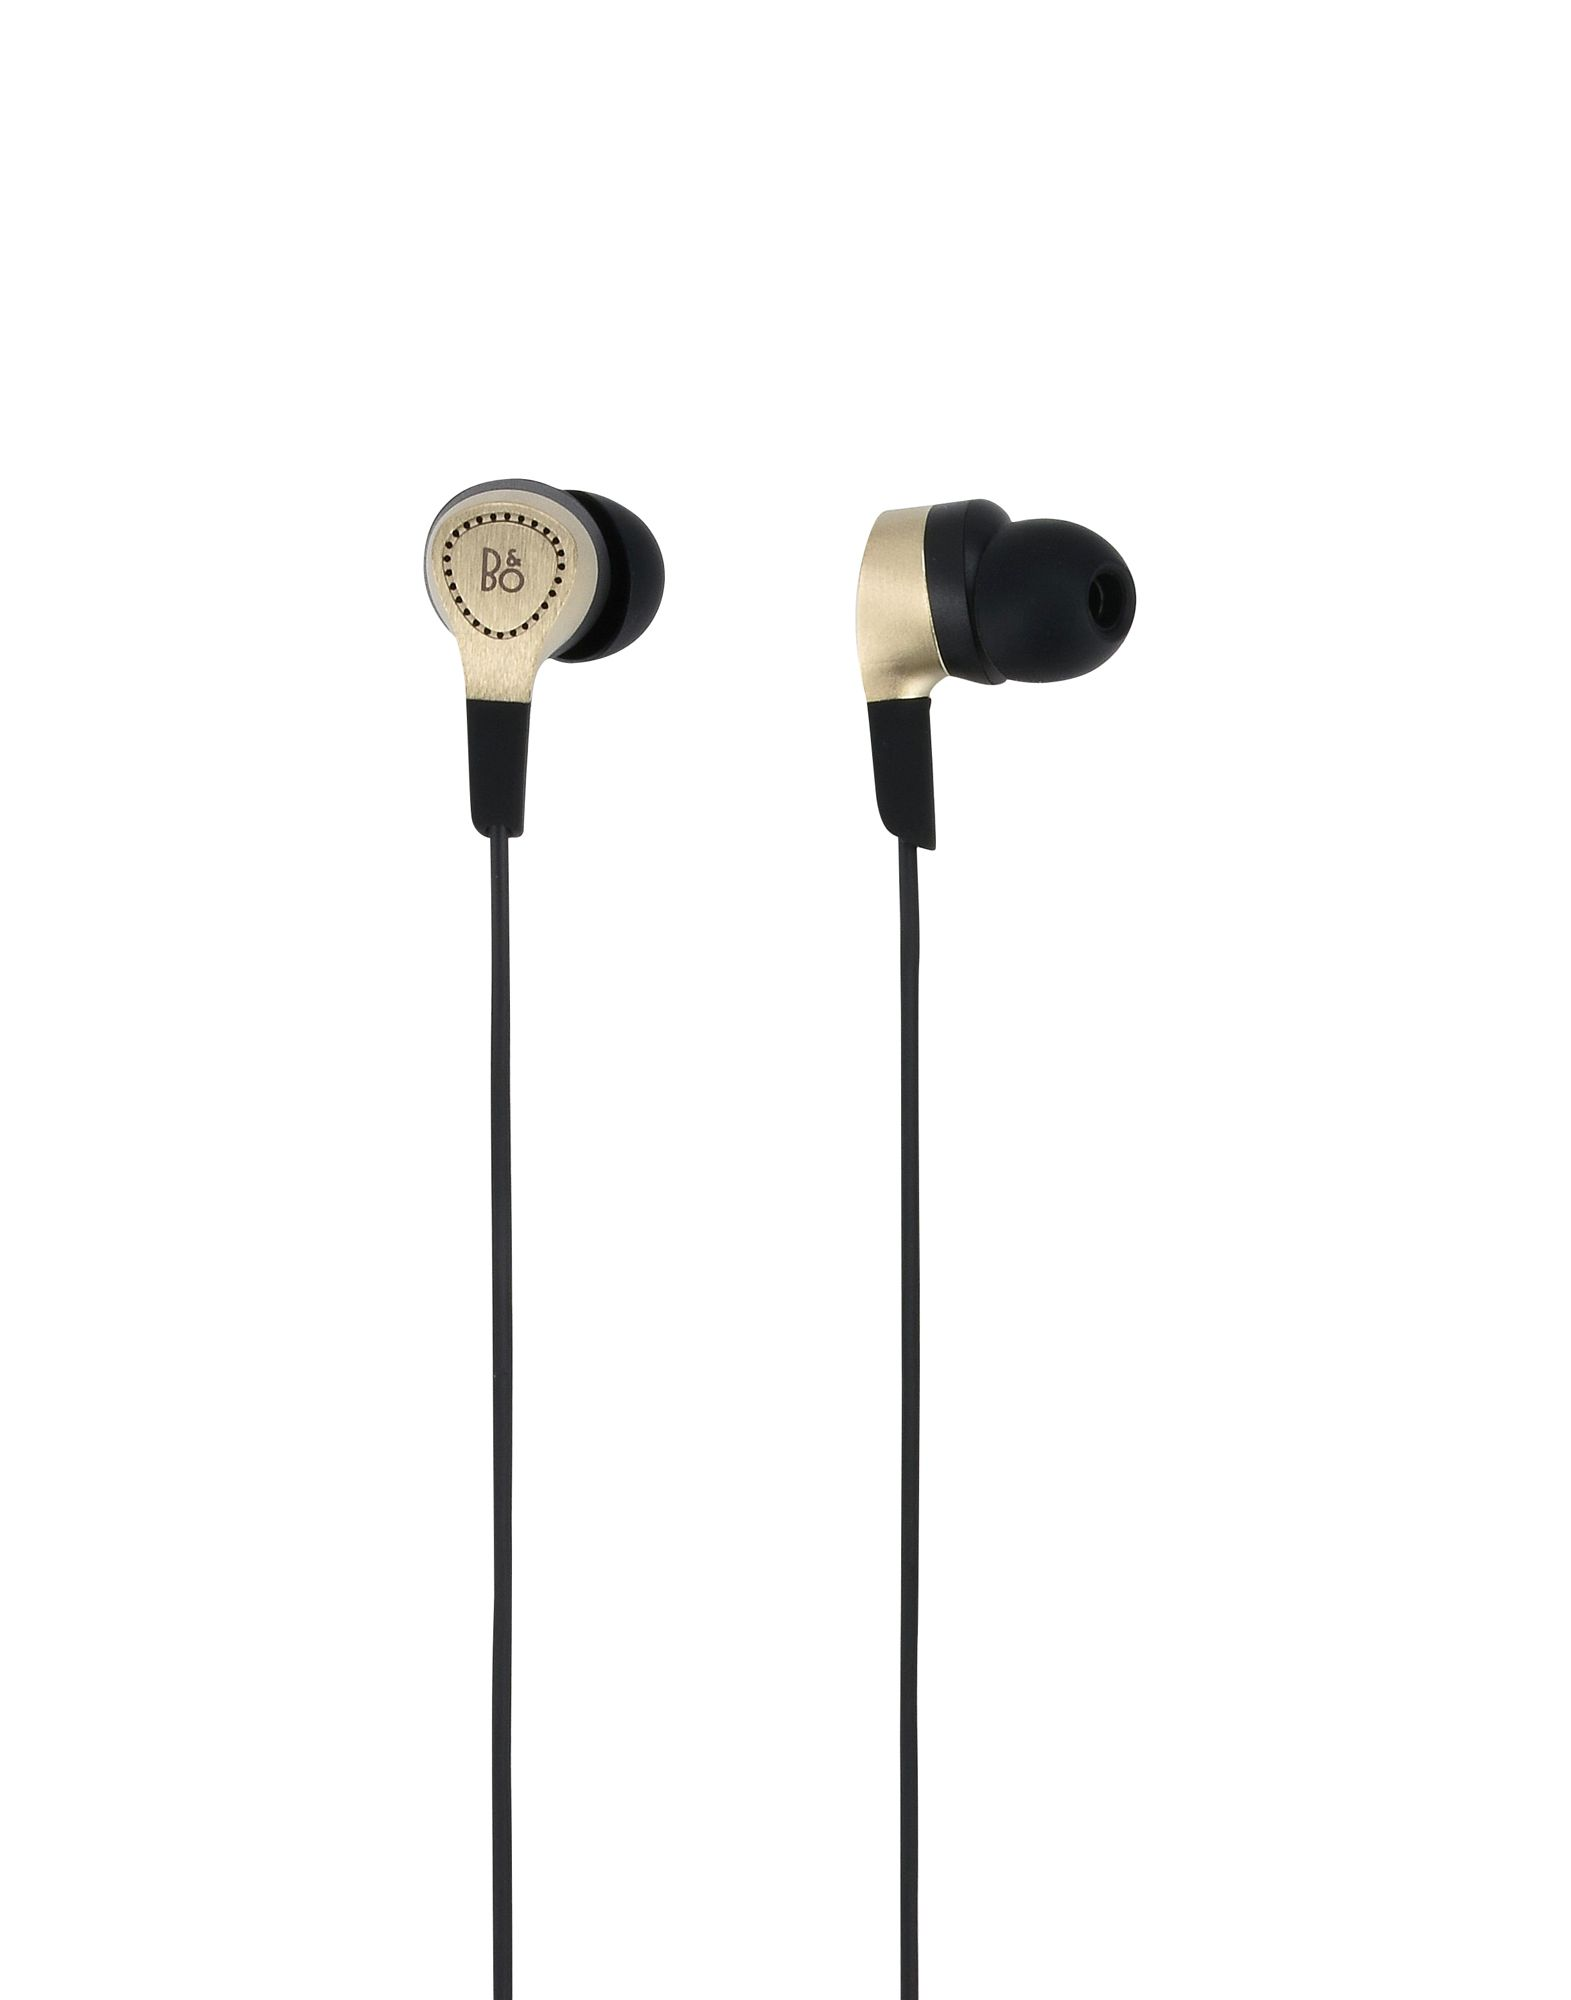 Cuffie B&O Play Beoplay H3 2Nd Generation Champagne - Uomo - Acquista online su